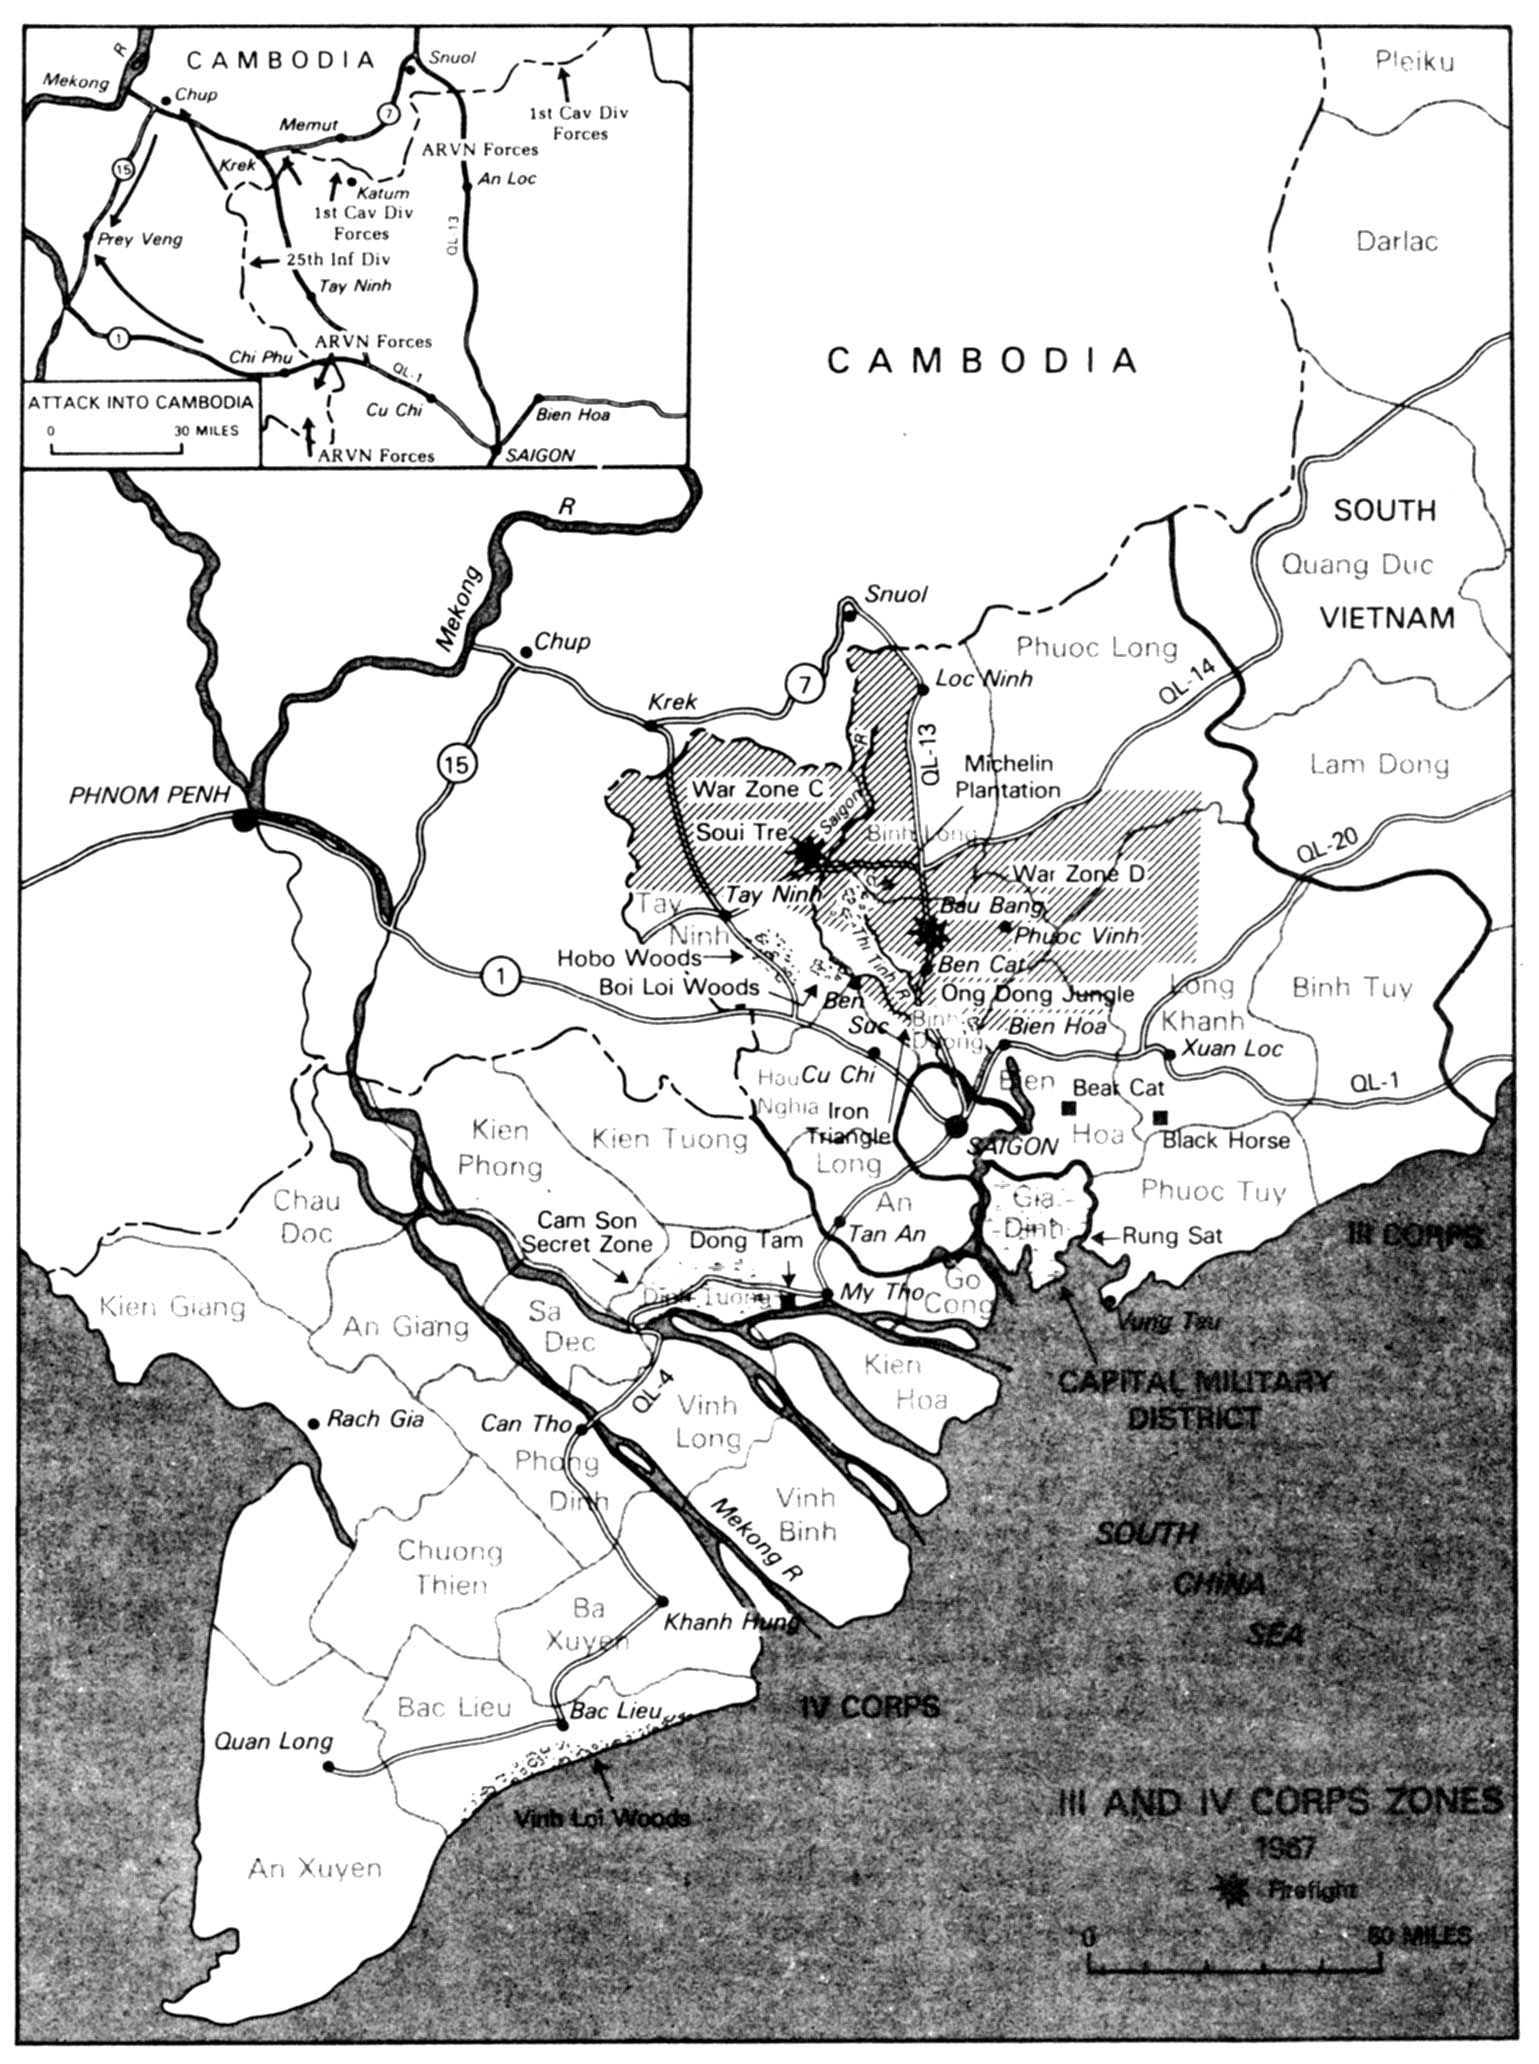 Iii An Iv Corps Zones 1967 Map 48